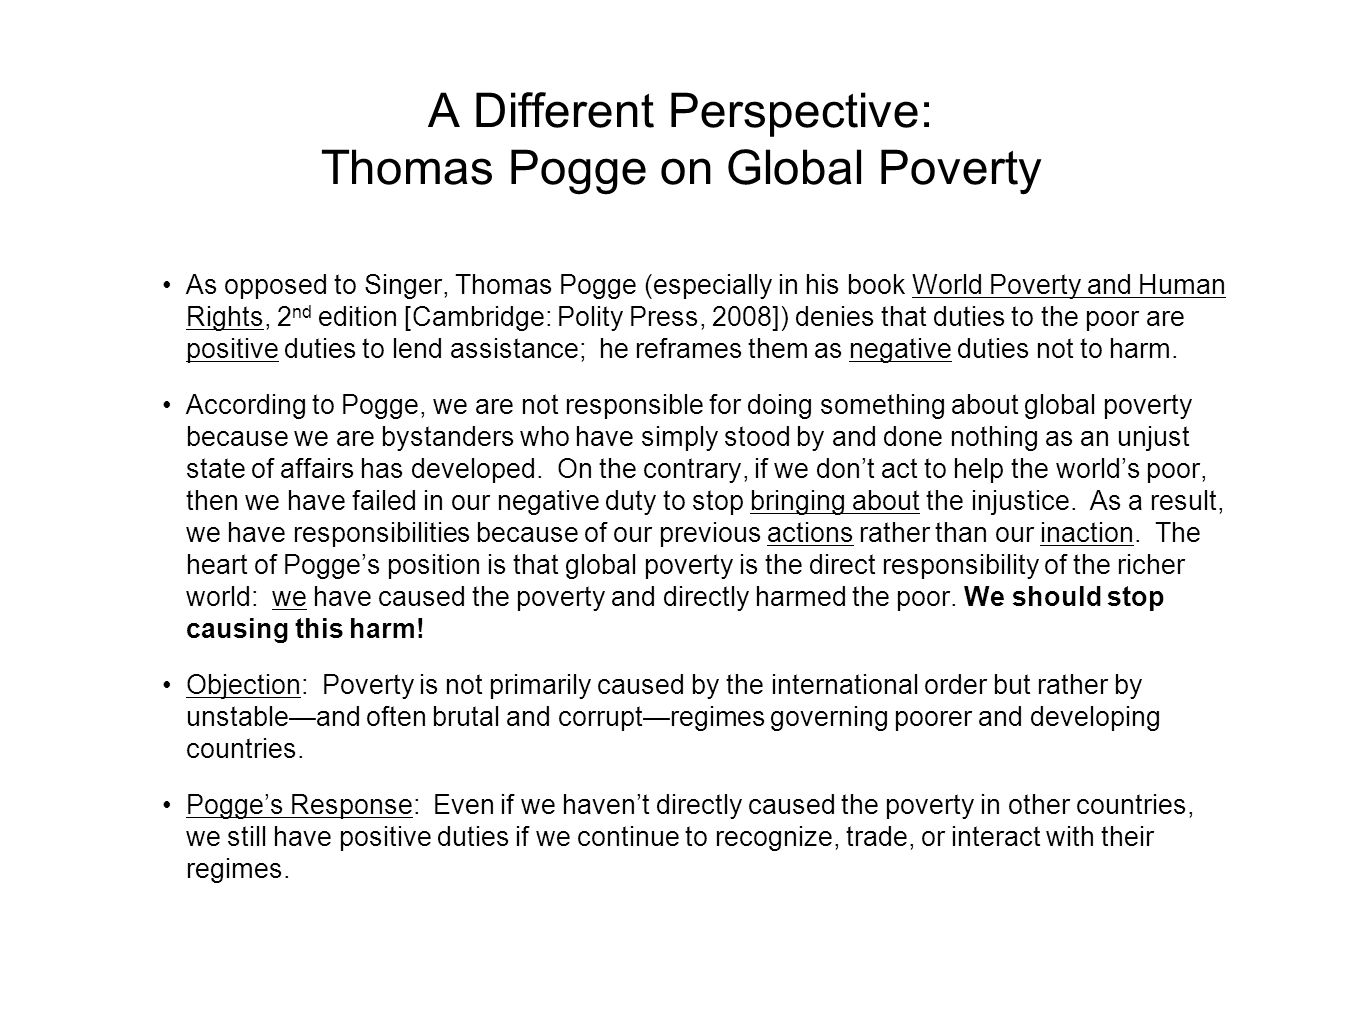 A Different Perspective: Thomas Pogge on Global Poverty As opposed to Singer, Thomas Pogge (especially in his book World Poverty and Human Rights, 2 n